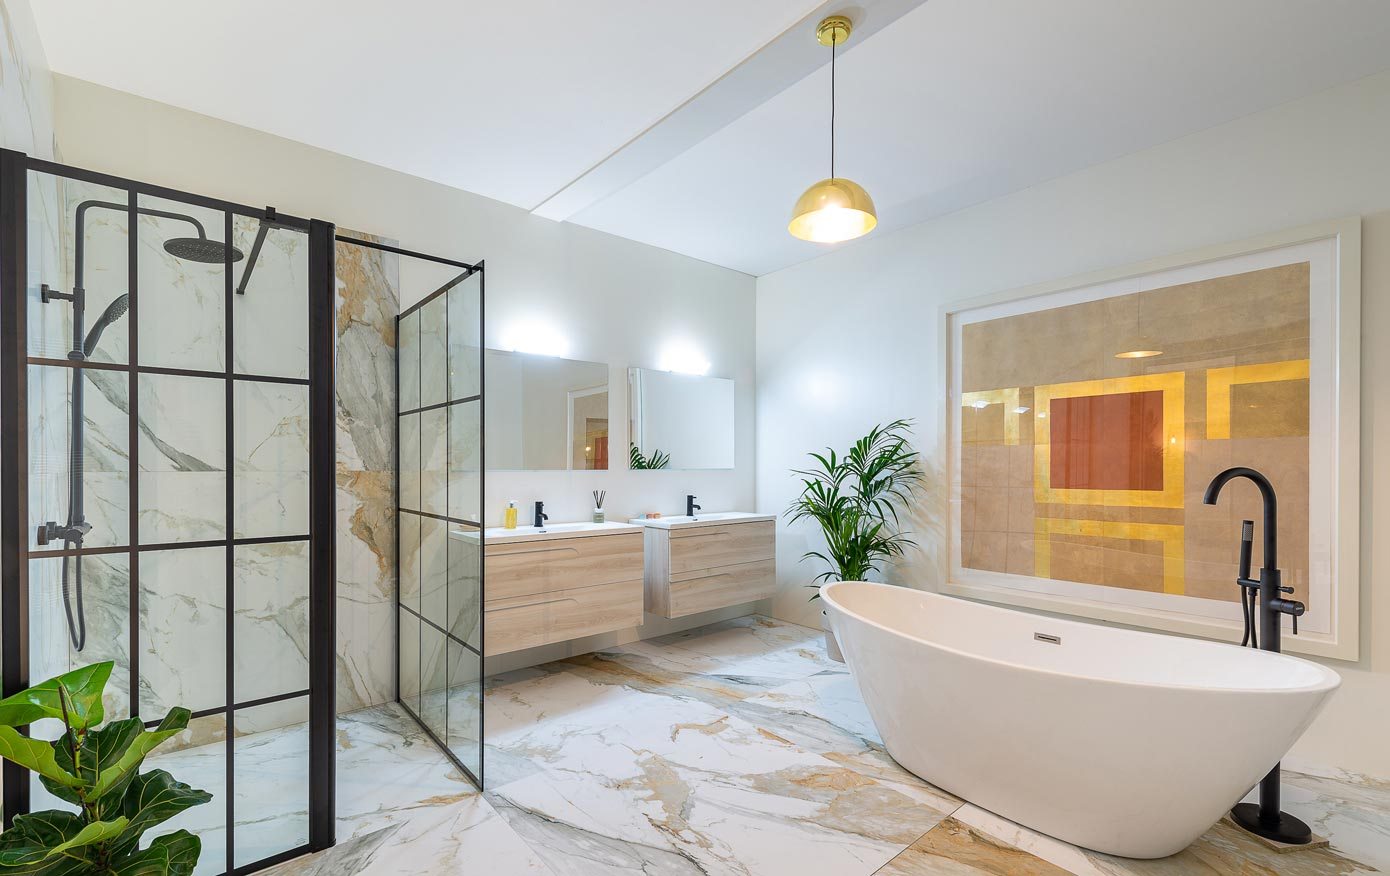 Win The Bathroom of Your Dreams